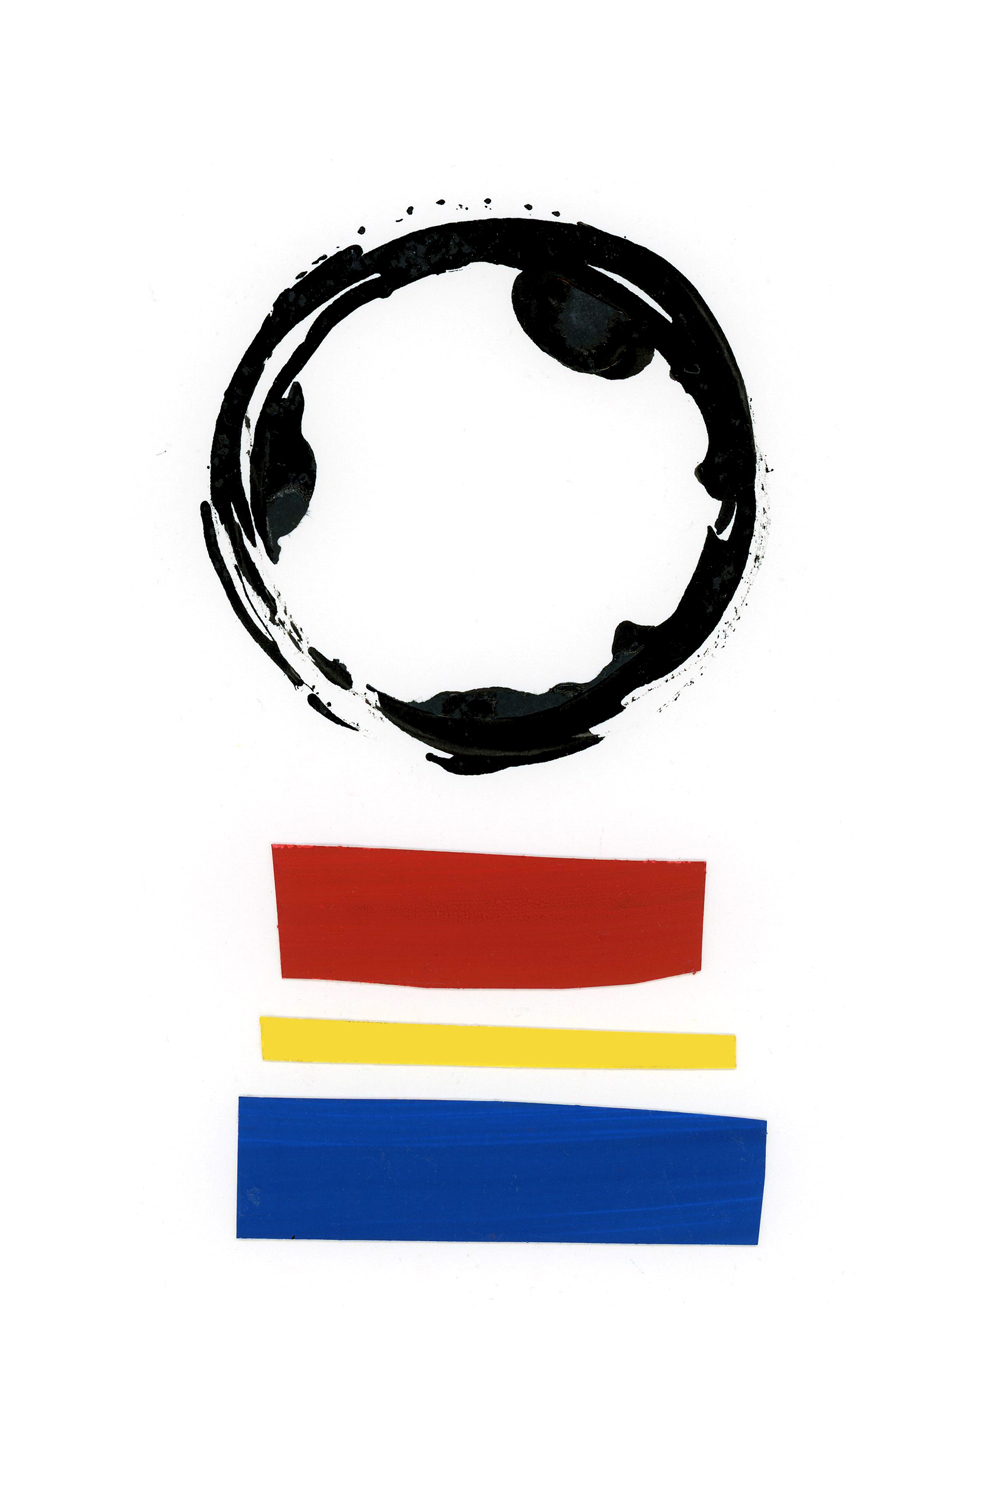 primary colors collage series, collage no. 3